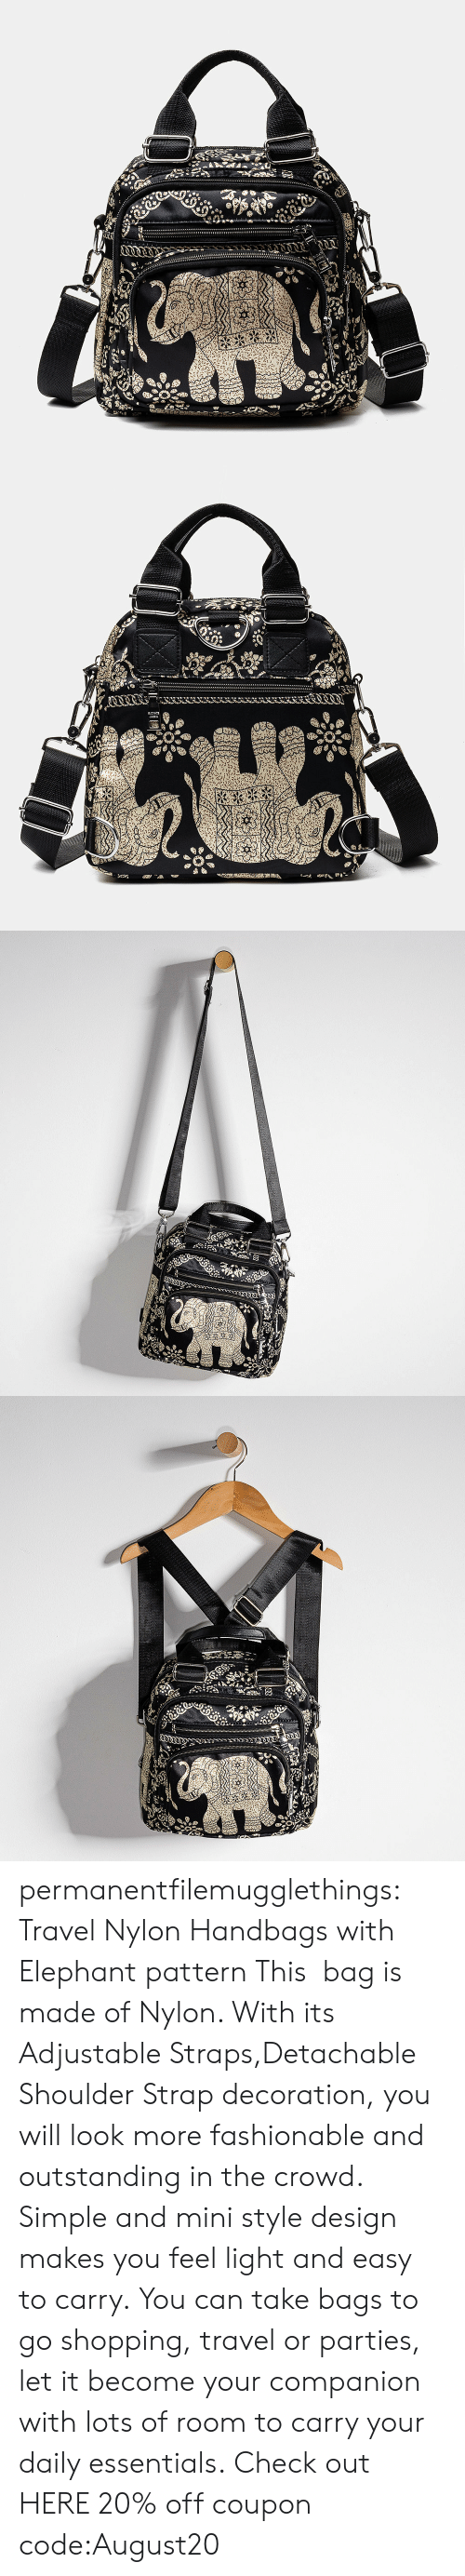 essentials: permanentfilemugglethings: Travel Nylon Handbags with Elephant pattern This bag is made of Nylon. With its Adjustable Straps,Detachable Shoulder Strap decoration, you will look more fashionable and outstanding in the crowd. Simple and mini style design makes you feel light and easy to carry. You can take bags to go shopping, travel or parties, let it become your companion with lots of room to carry your daily essentials. Check out HERE 20% off coupon code:August20